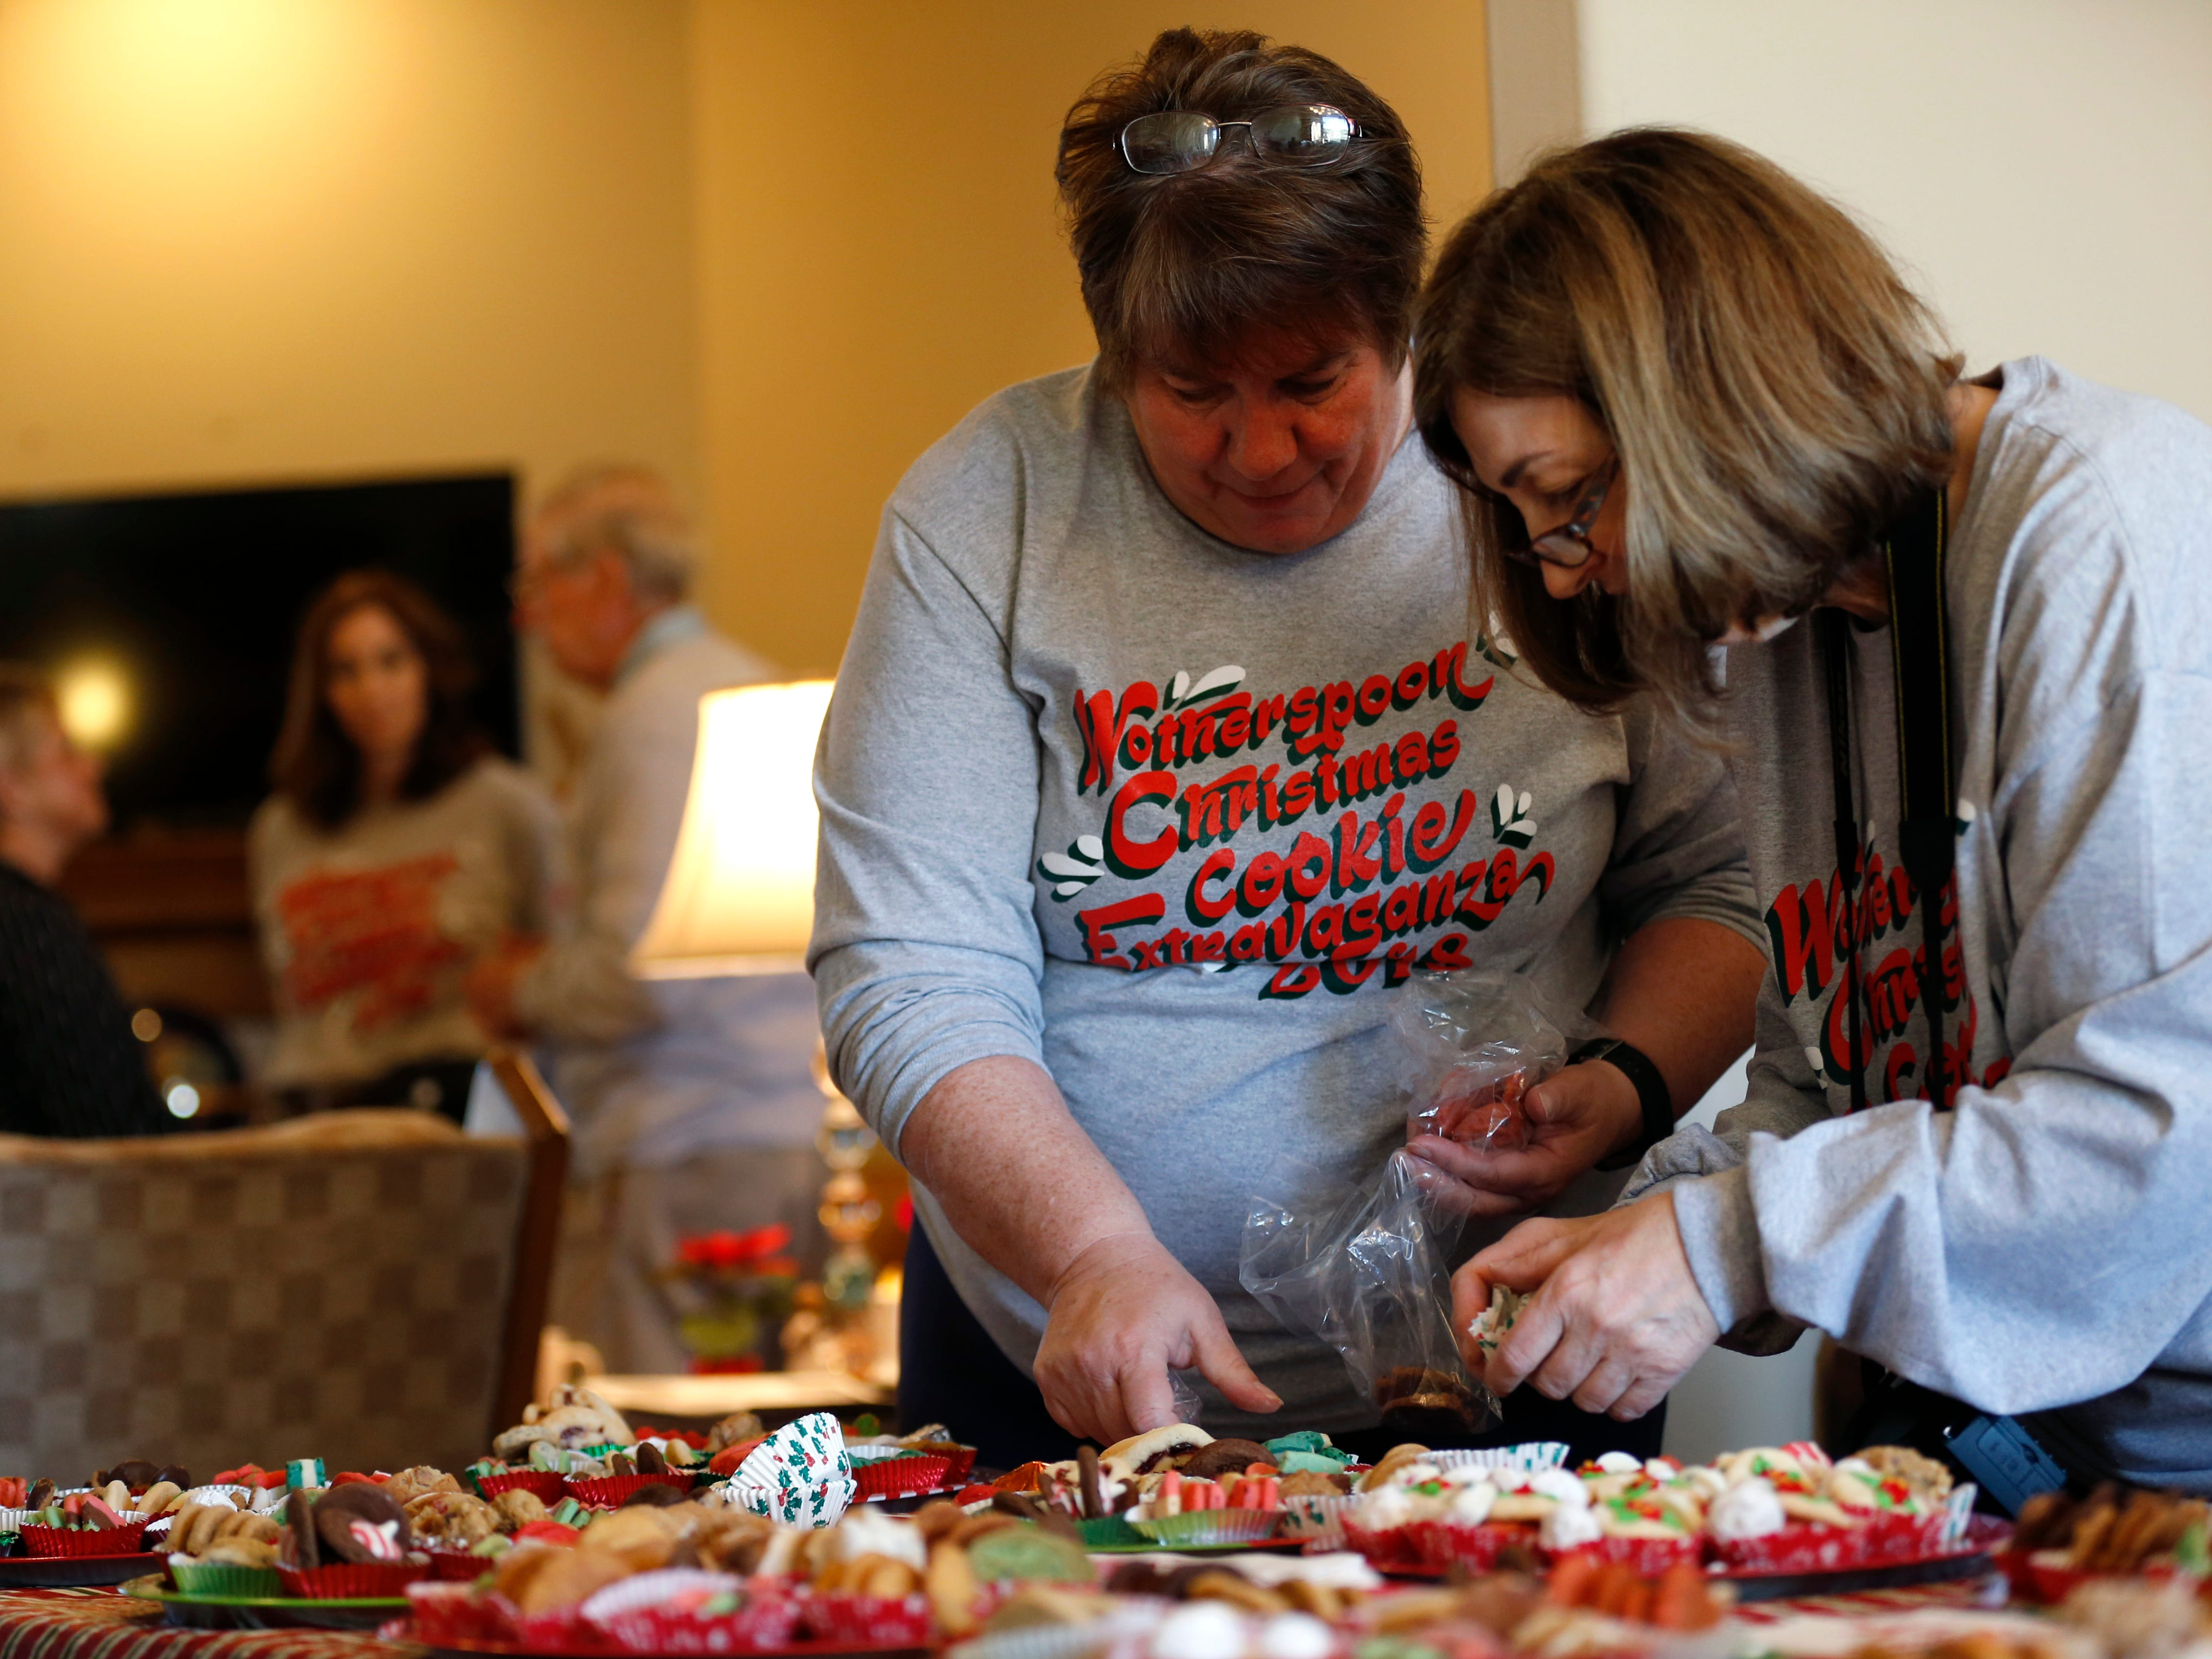 Family friend Sally Hibbs (left) and Rebecca Wotherspoon restock cookies for sampling at the annual Wotherspoon Christmas cookie extravaganza on Saturday, Dec. 15, 2018.